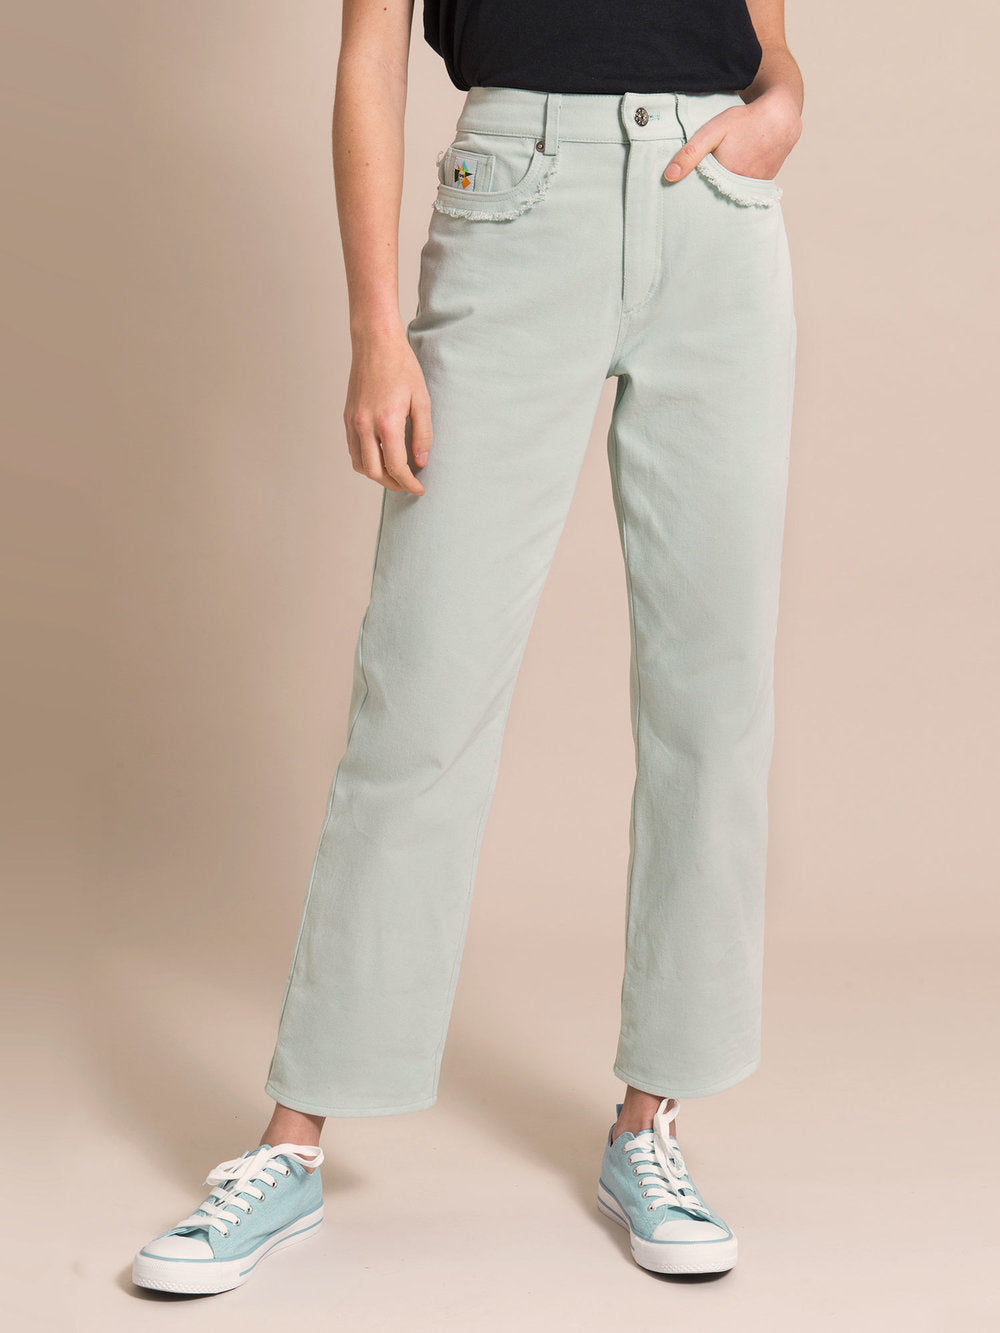 Light blue mom's jeans with frayed details around the pockets